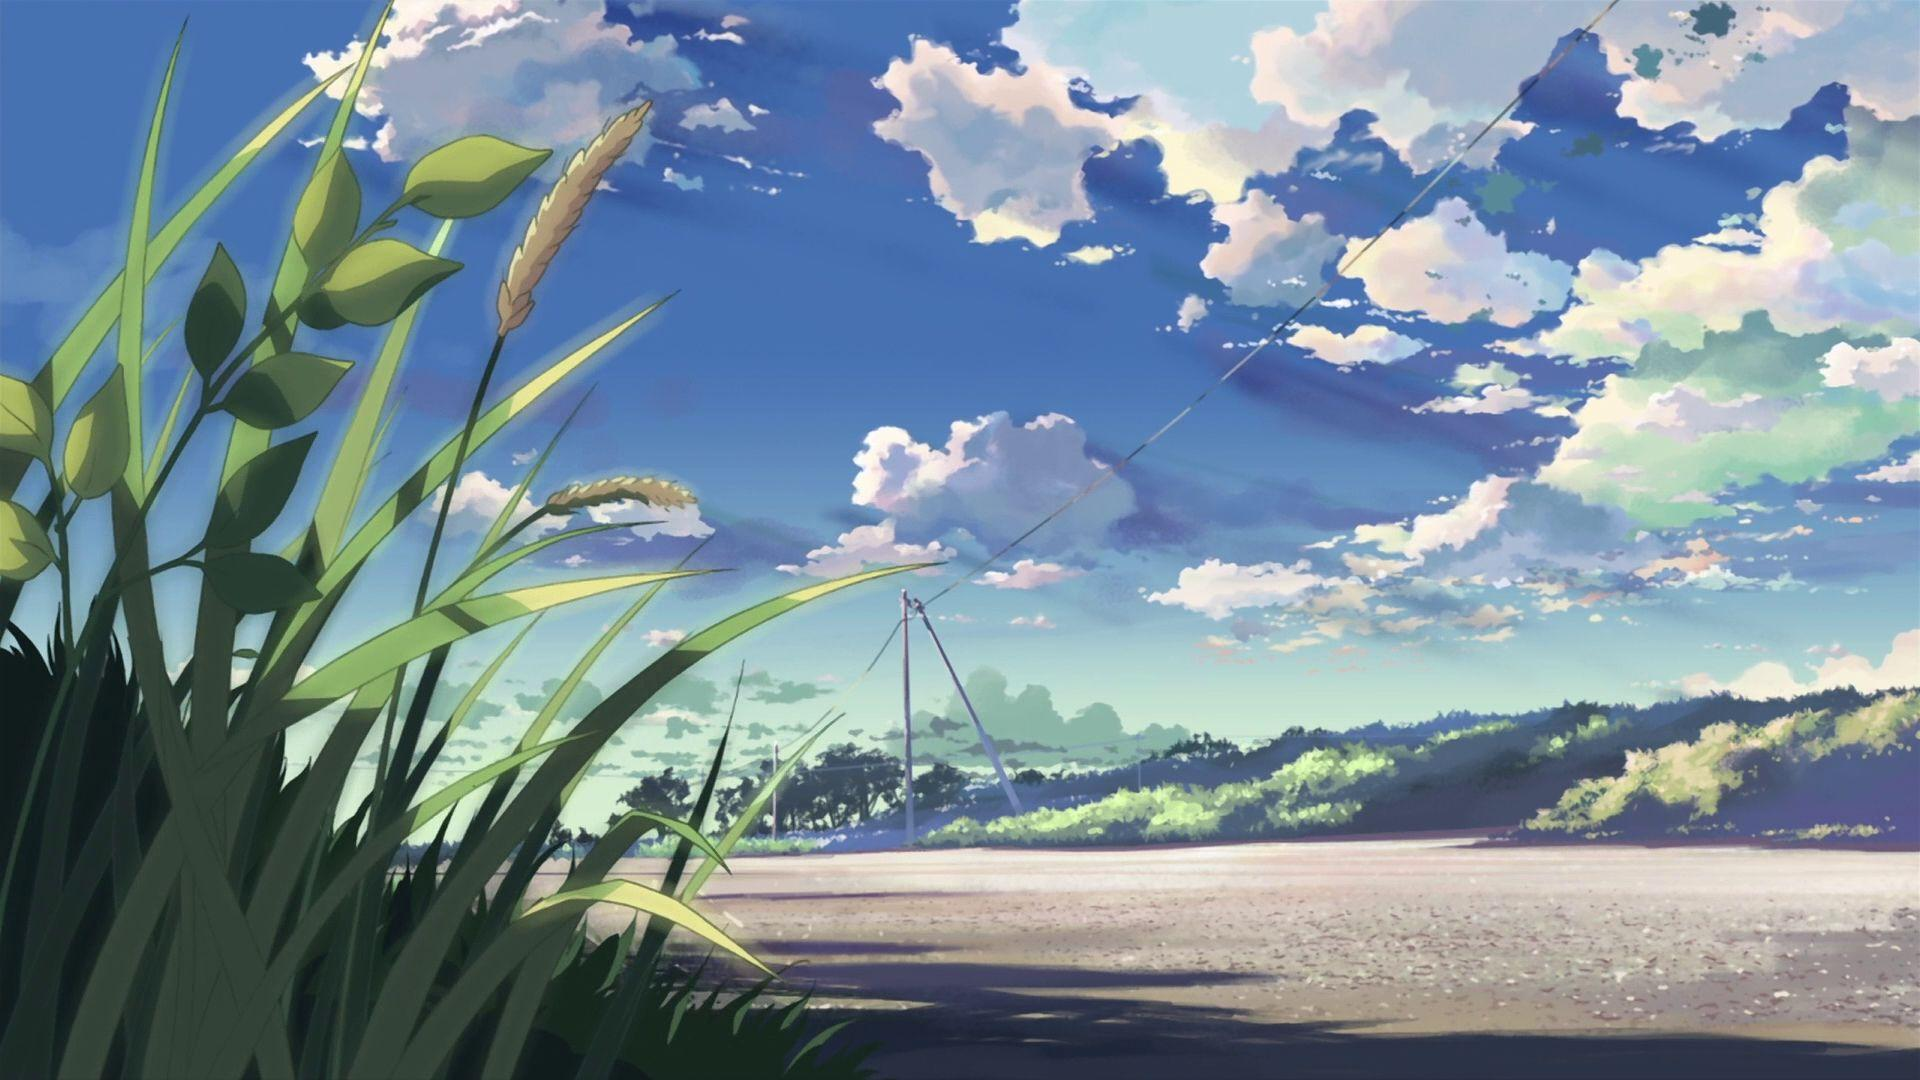 Anime Landscape Wallpapers HD